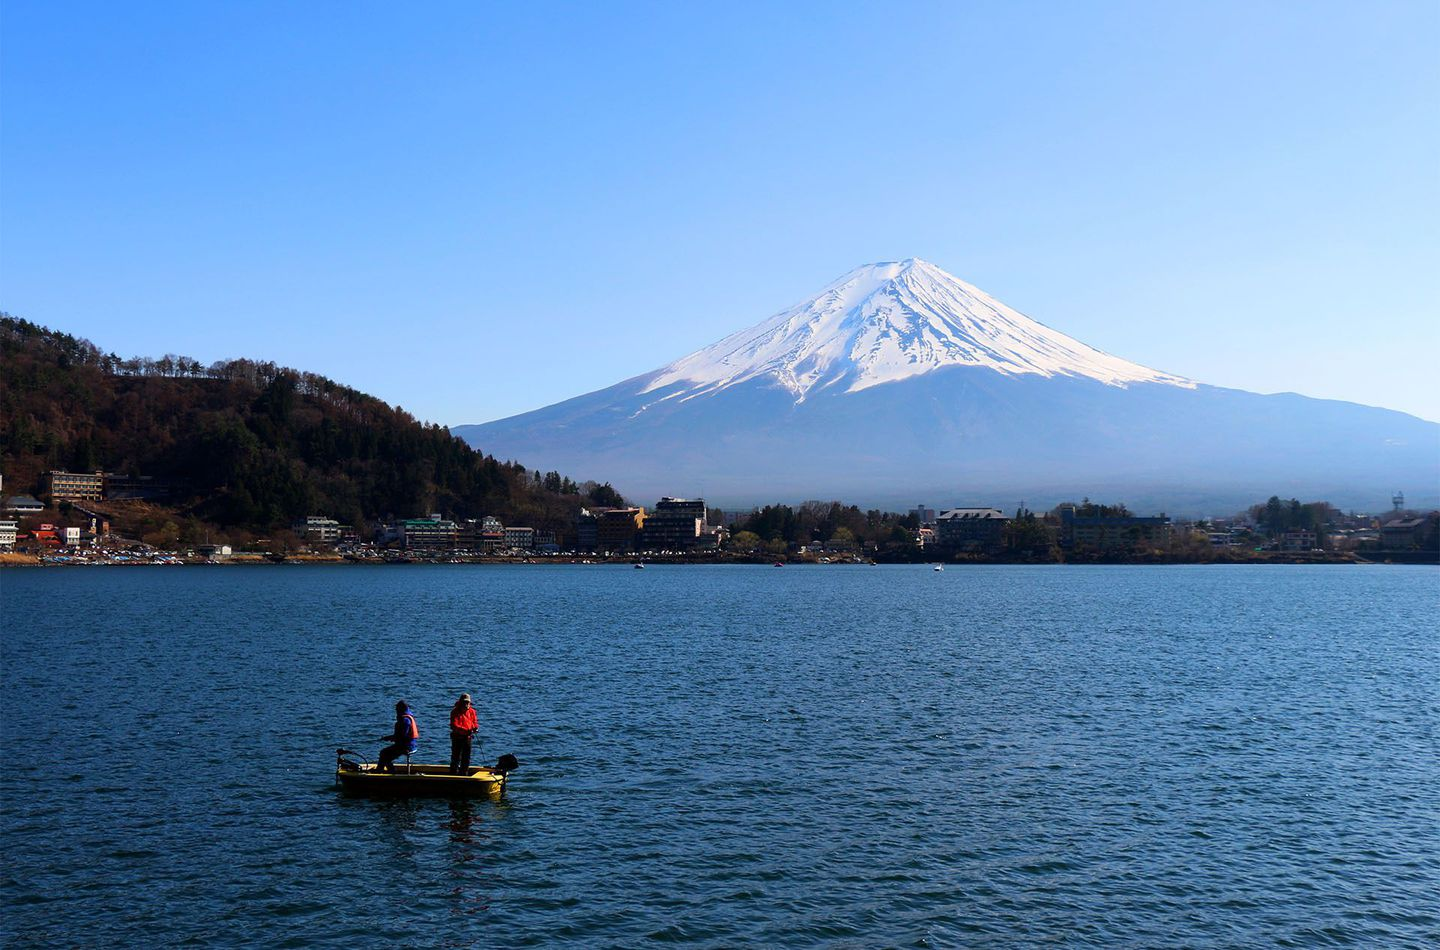 Japan%20mount%20fuji%20boat%20by%20felix%20cesare